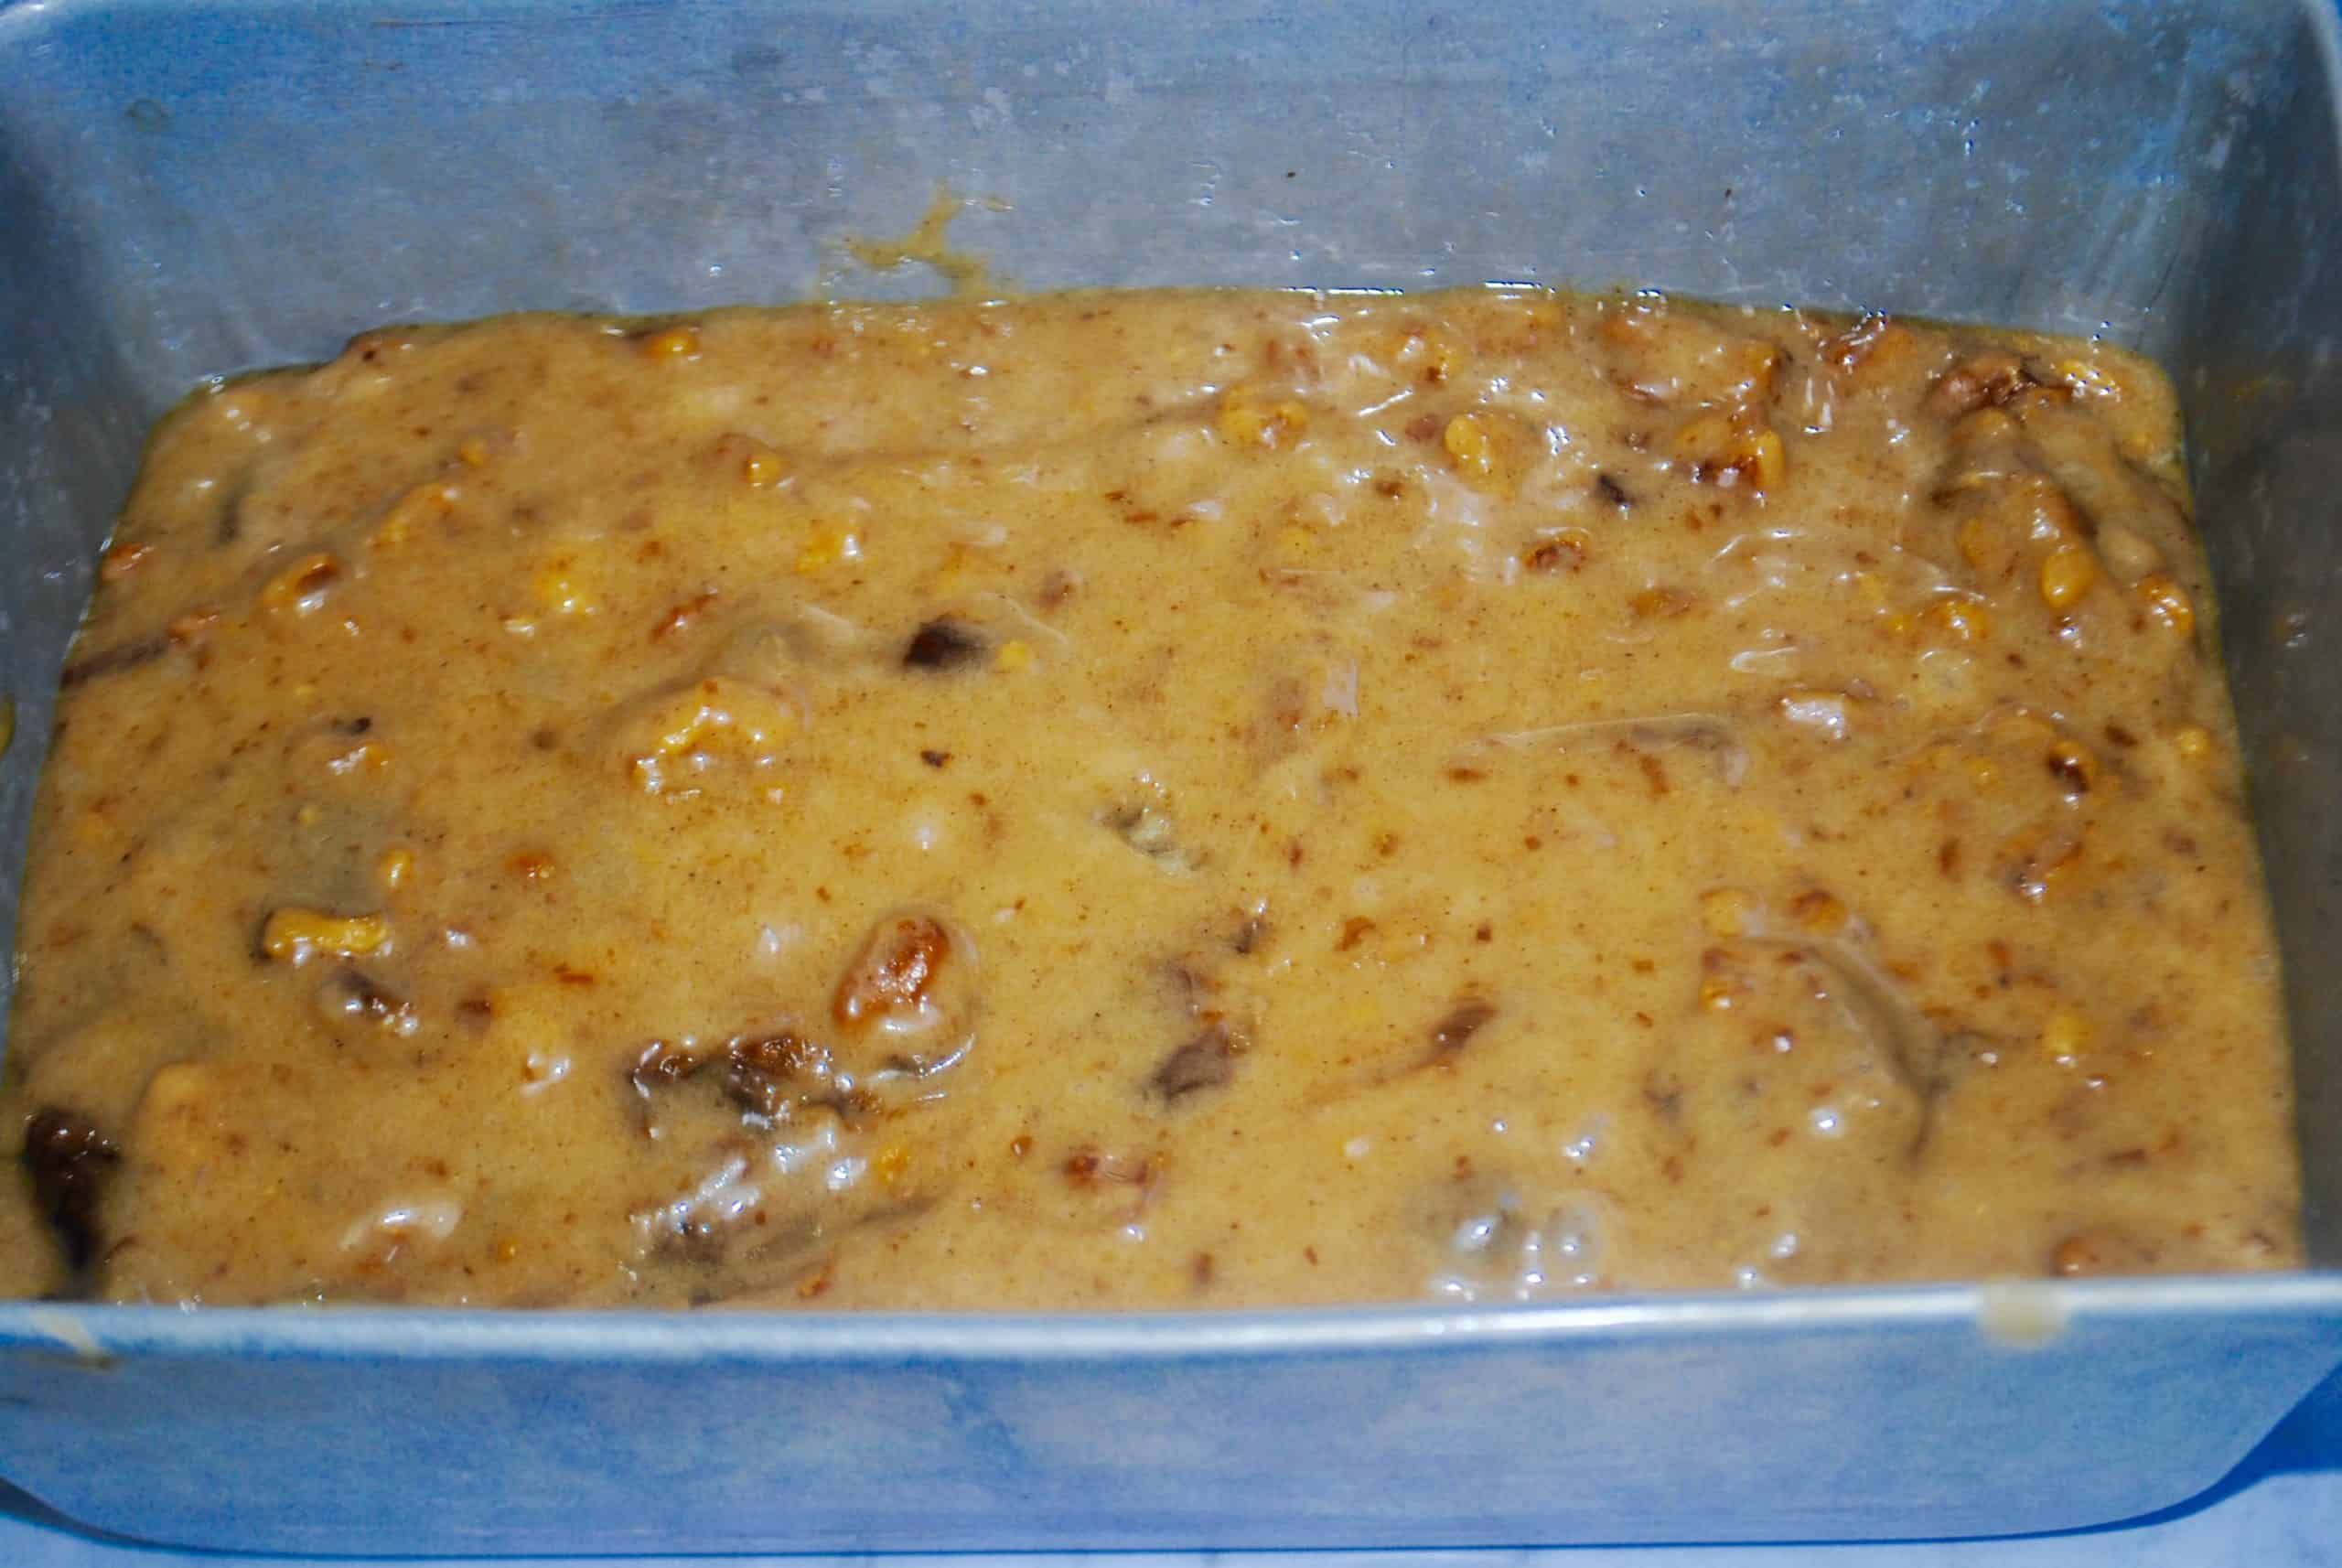 date and walnut cake mixture poured into a silver tin ready to bake